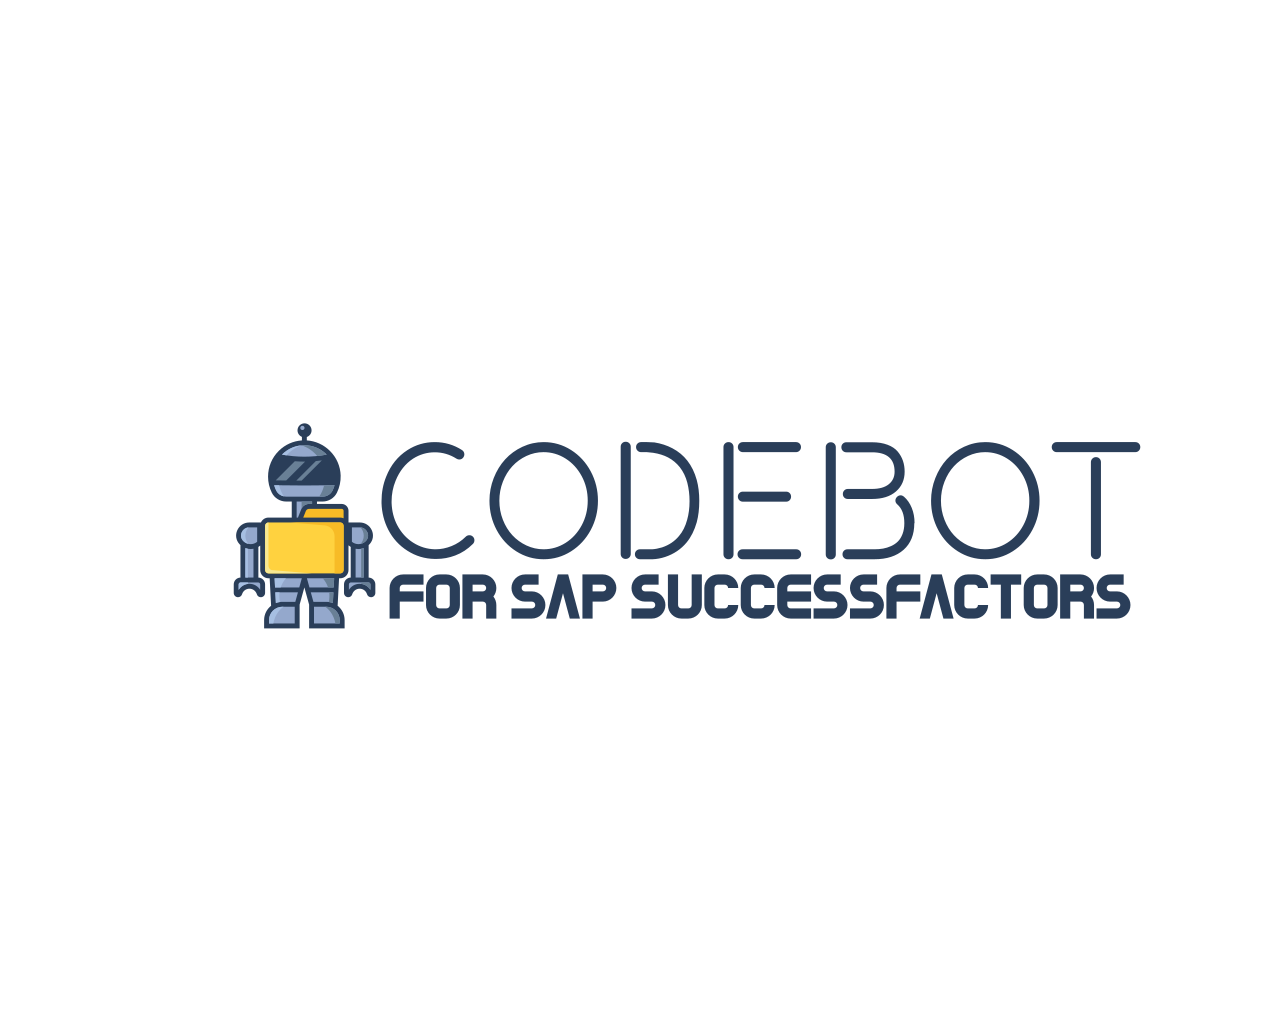 SuccessFactors Configuration, Testing, Security with the Power of Bot Technology